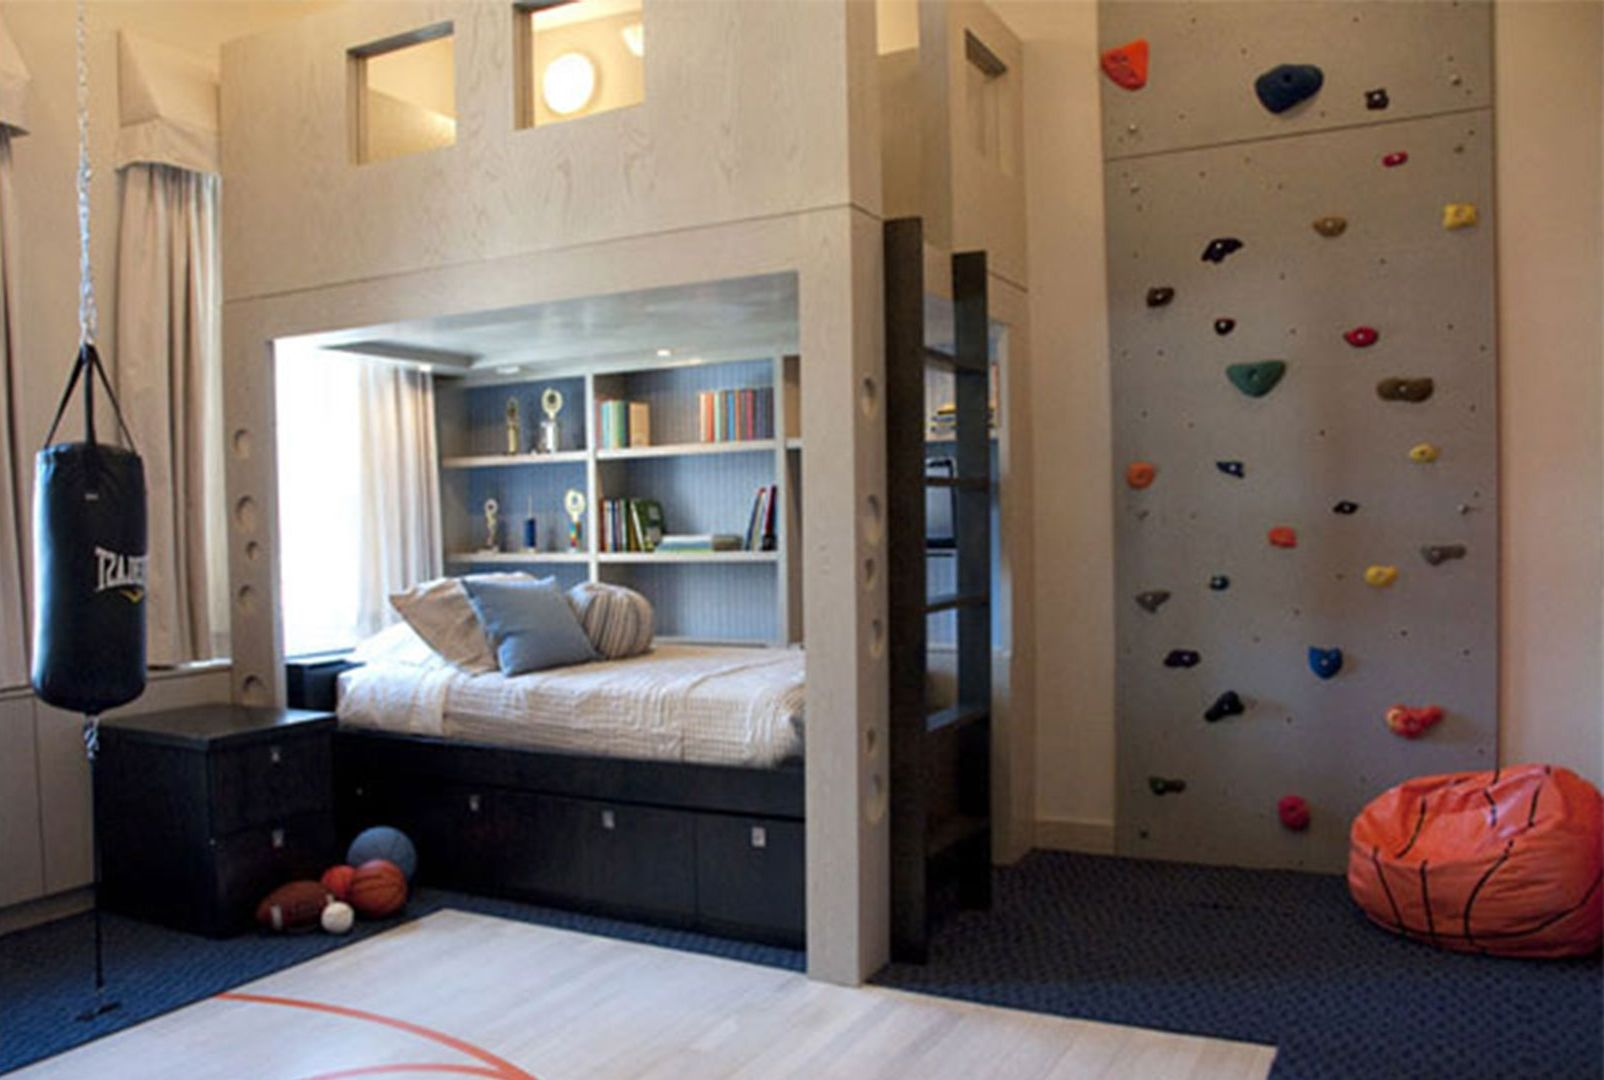 Give A Boy S Bedroom A Nautical Vibe With A Navy Boy S Bedroom Ideas Set Plank Walls And Ship Inspired Boy Bedroom Design Cool Kids Bedrooms Cool Kids Rooms